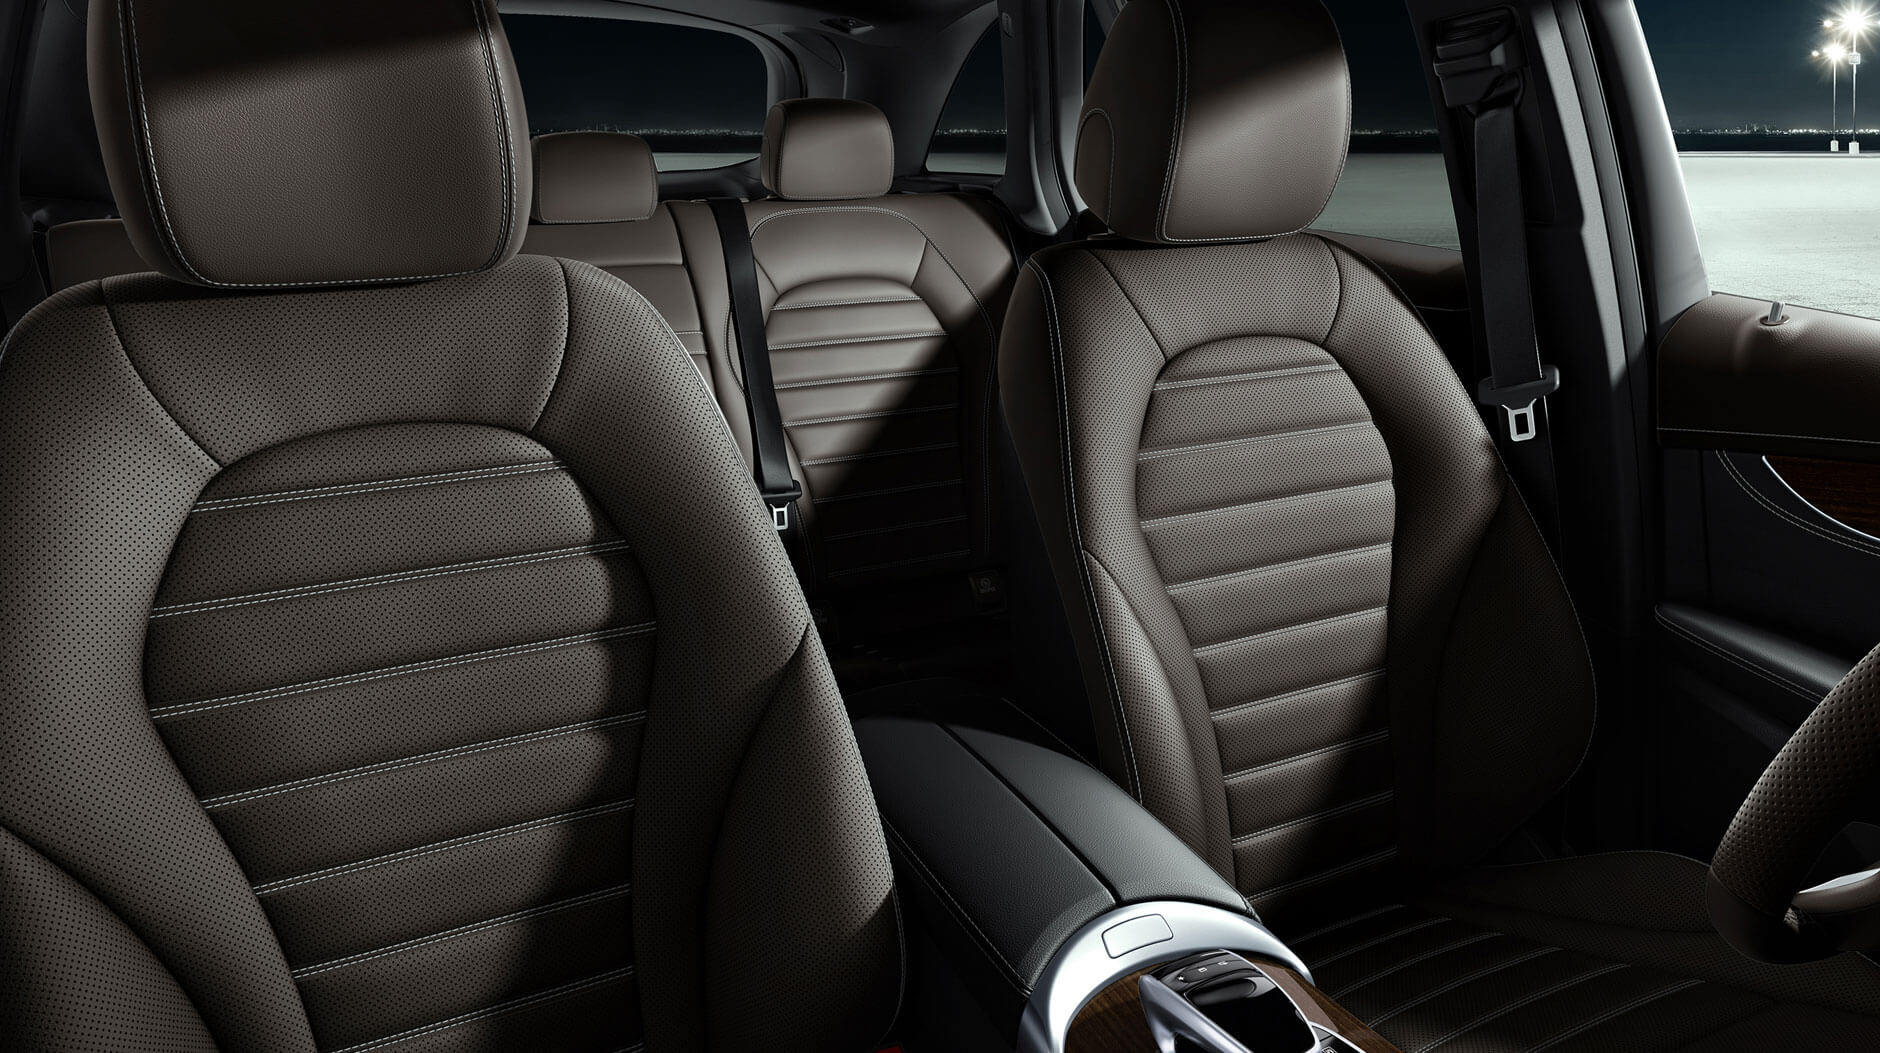 2017 Mercedes-Benz GLC front interior seating